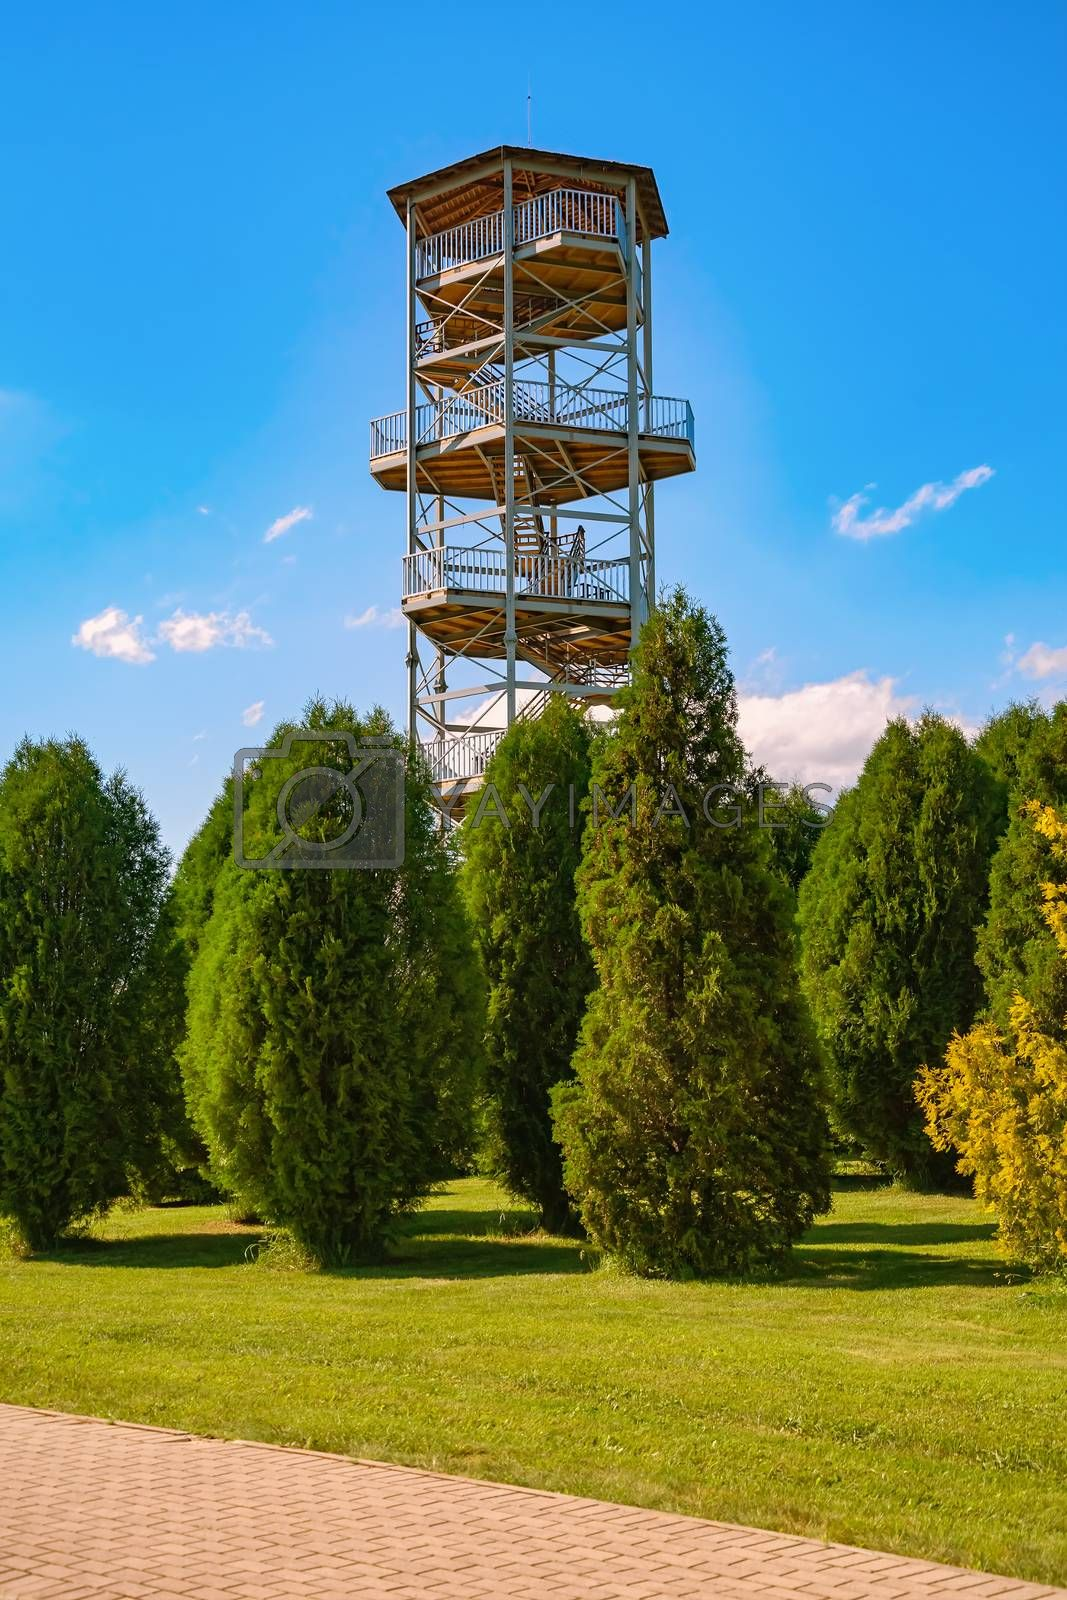 An observation tower in the arboretum